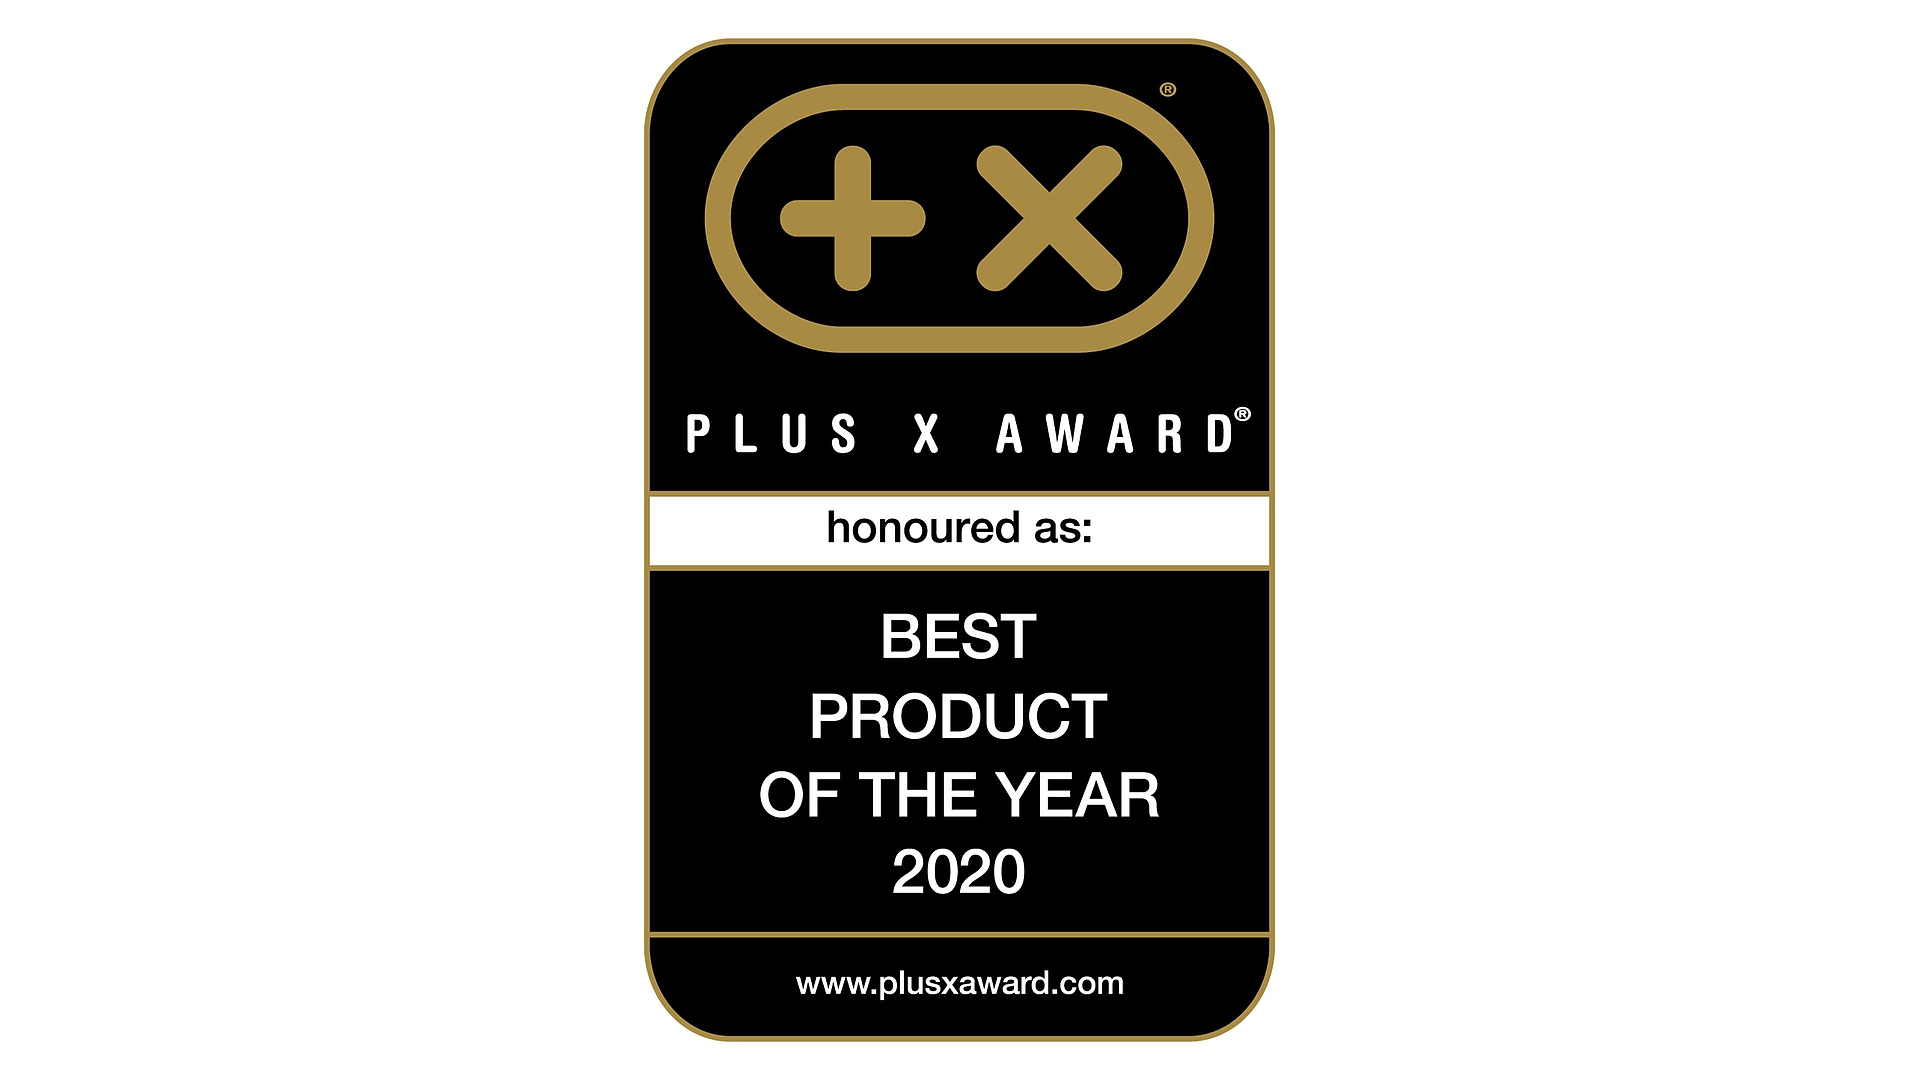 Award_Plus_X_Award_Best_Product_EN_thumb.jpg